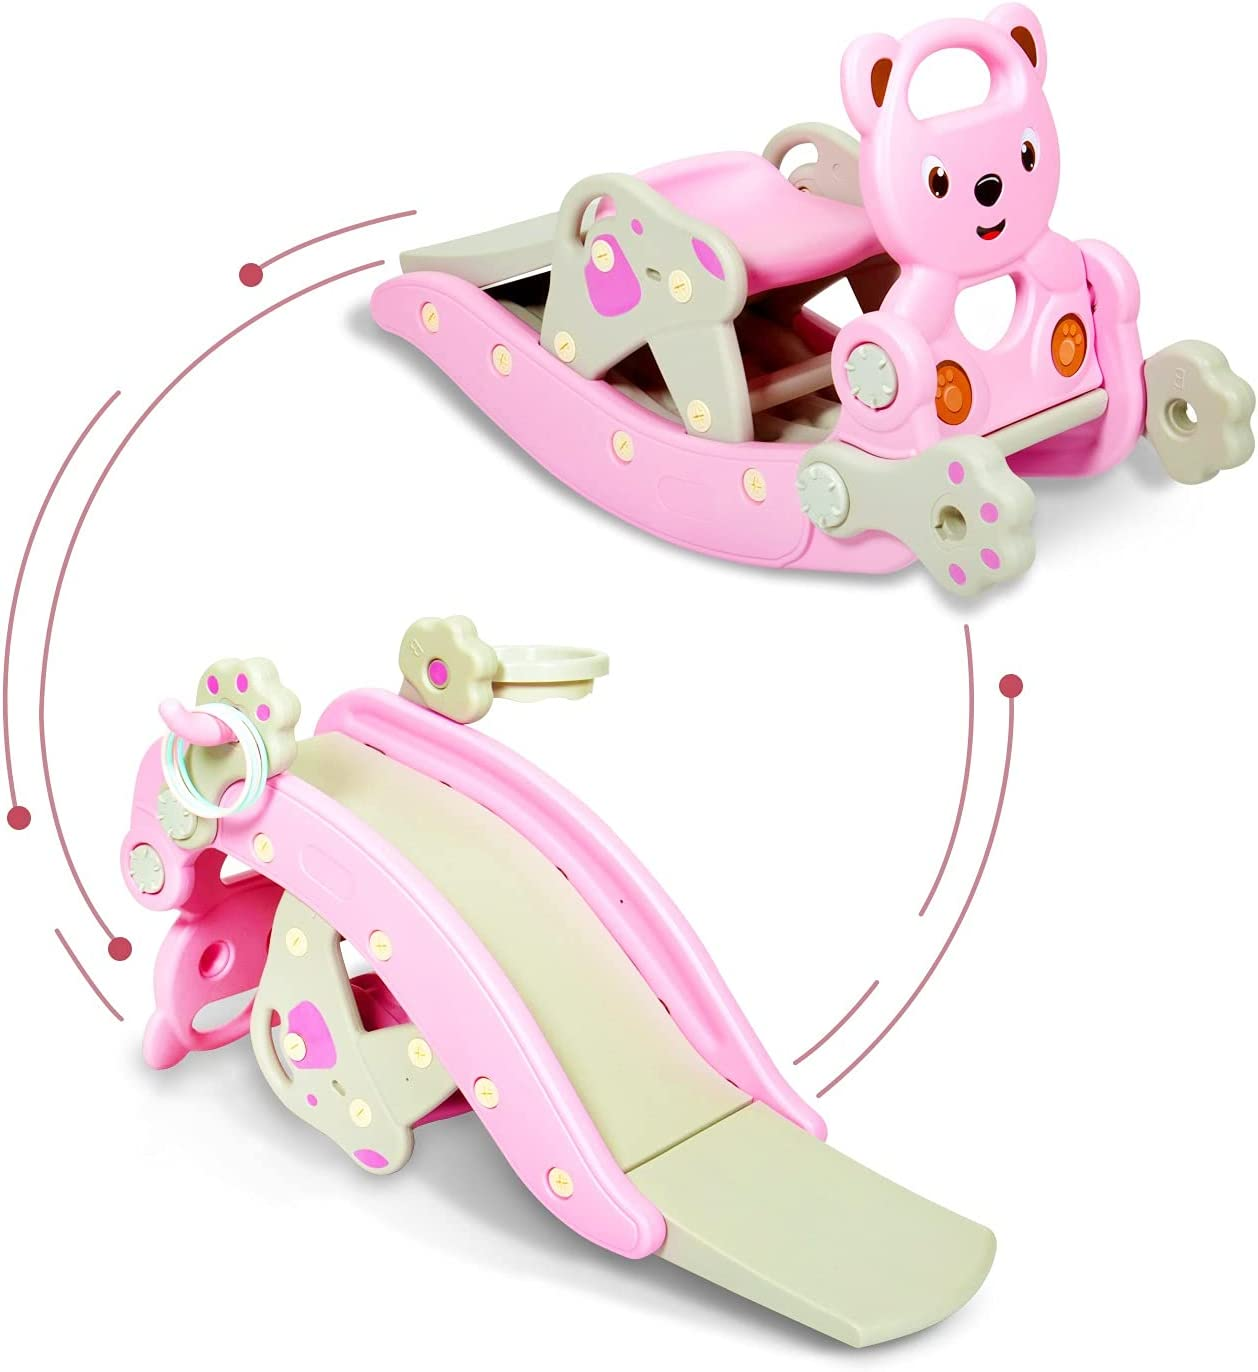 4 in 1 Rocking Horse Slide Set Toddler with Basketball Hoop and